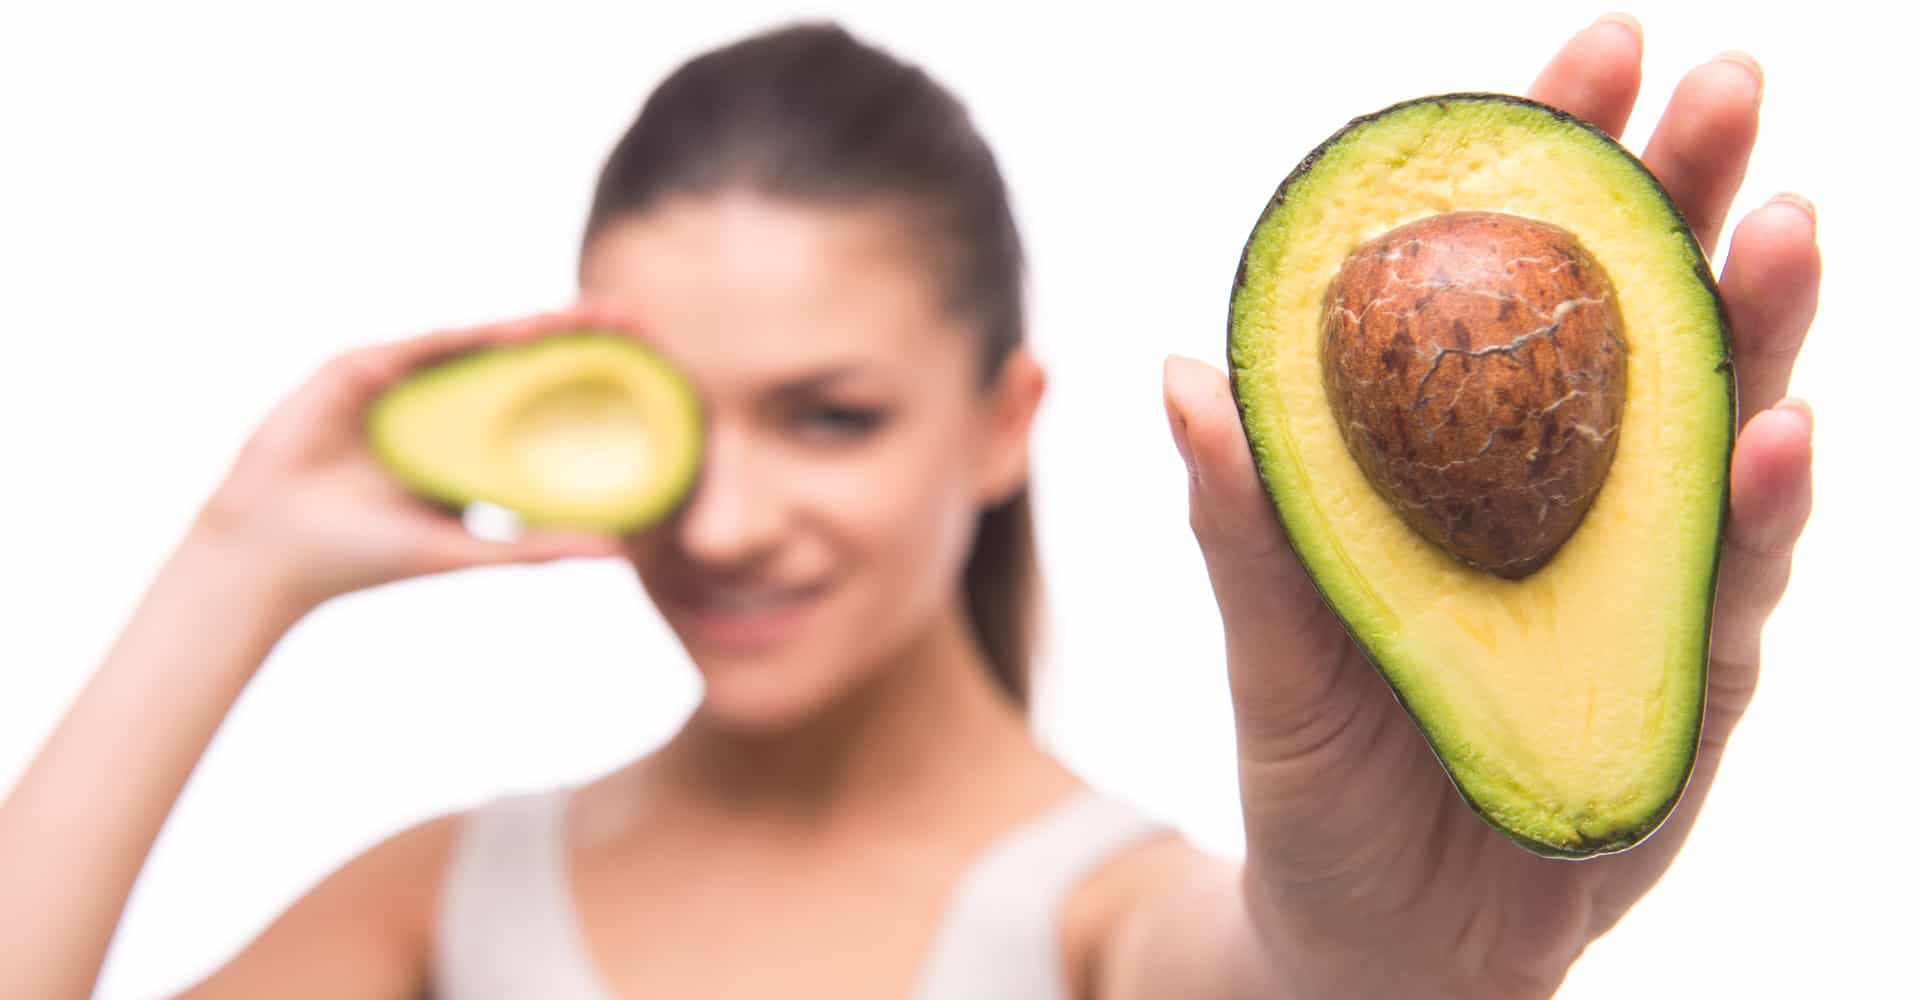 Avocado toast may not be so healthy after all